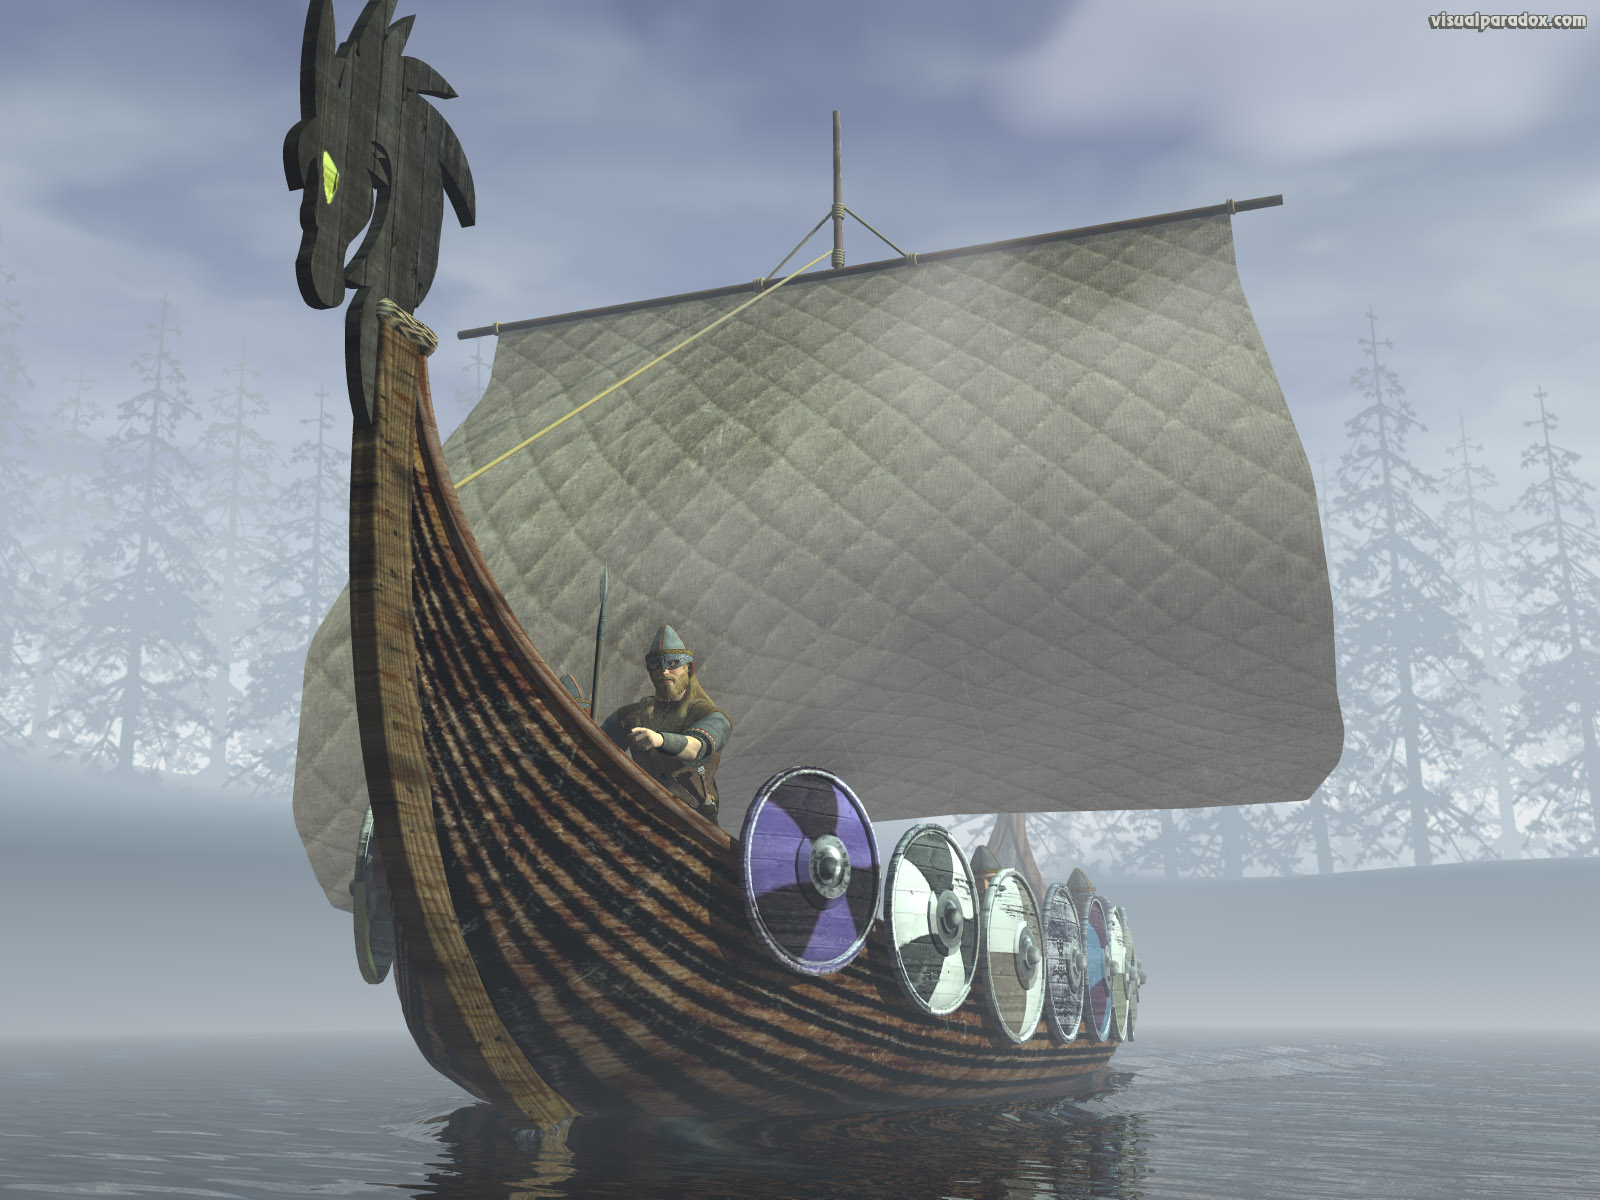 sail, boat, raiding, horde, attack, dragon, water, fog, drakkar, 3d, wallpaper